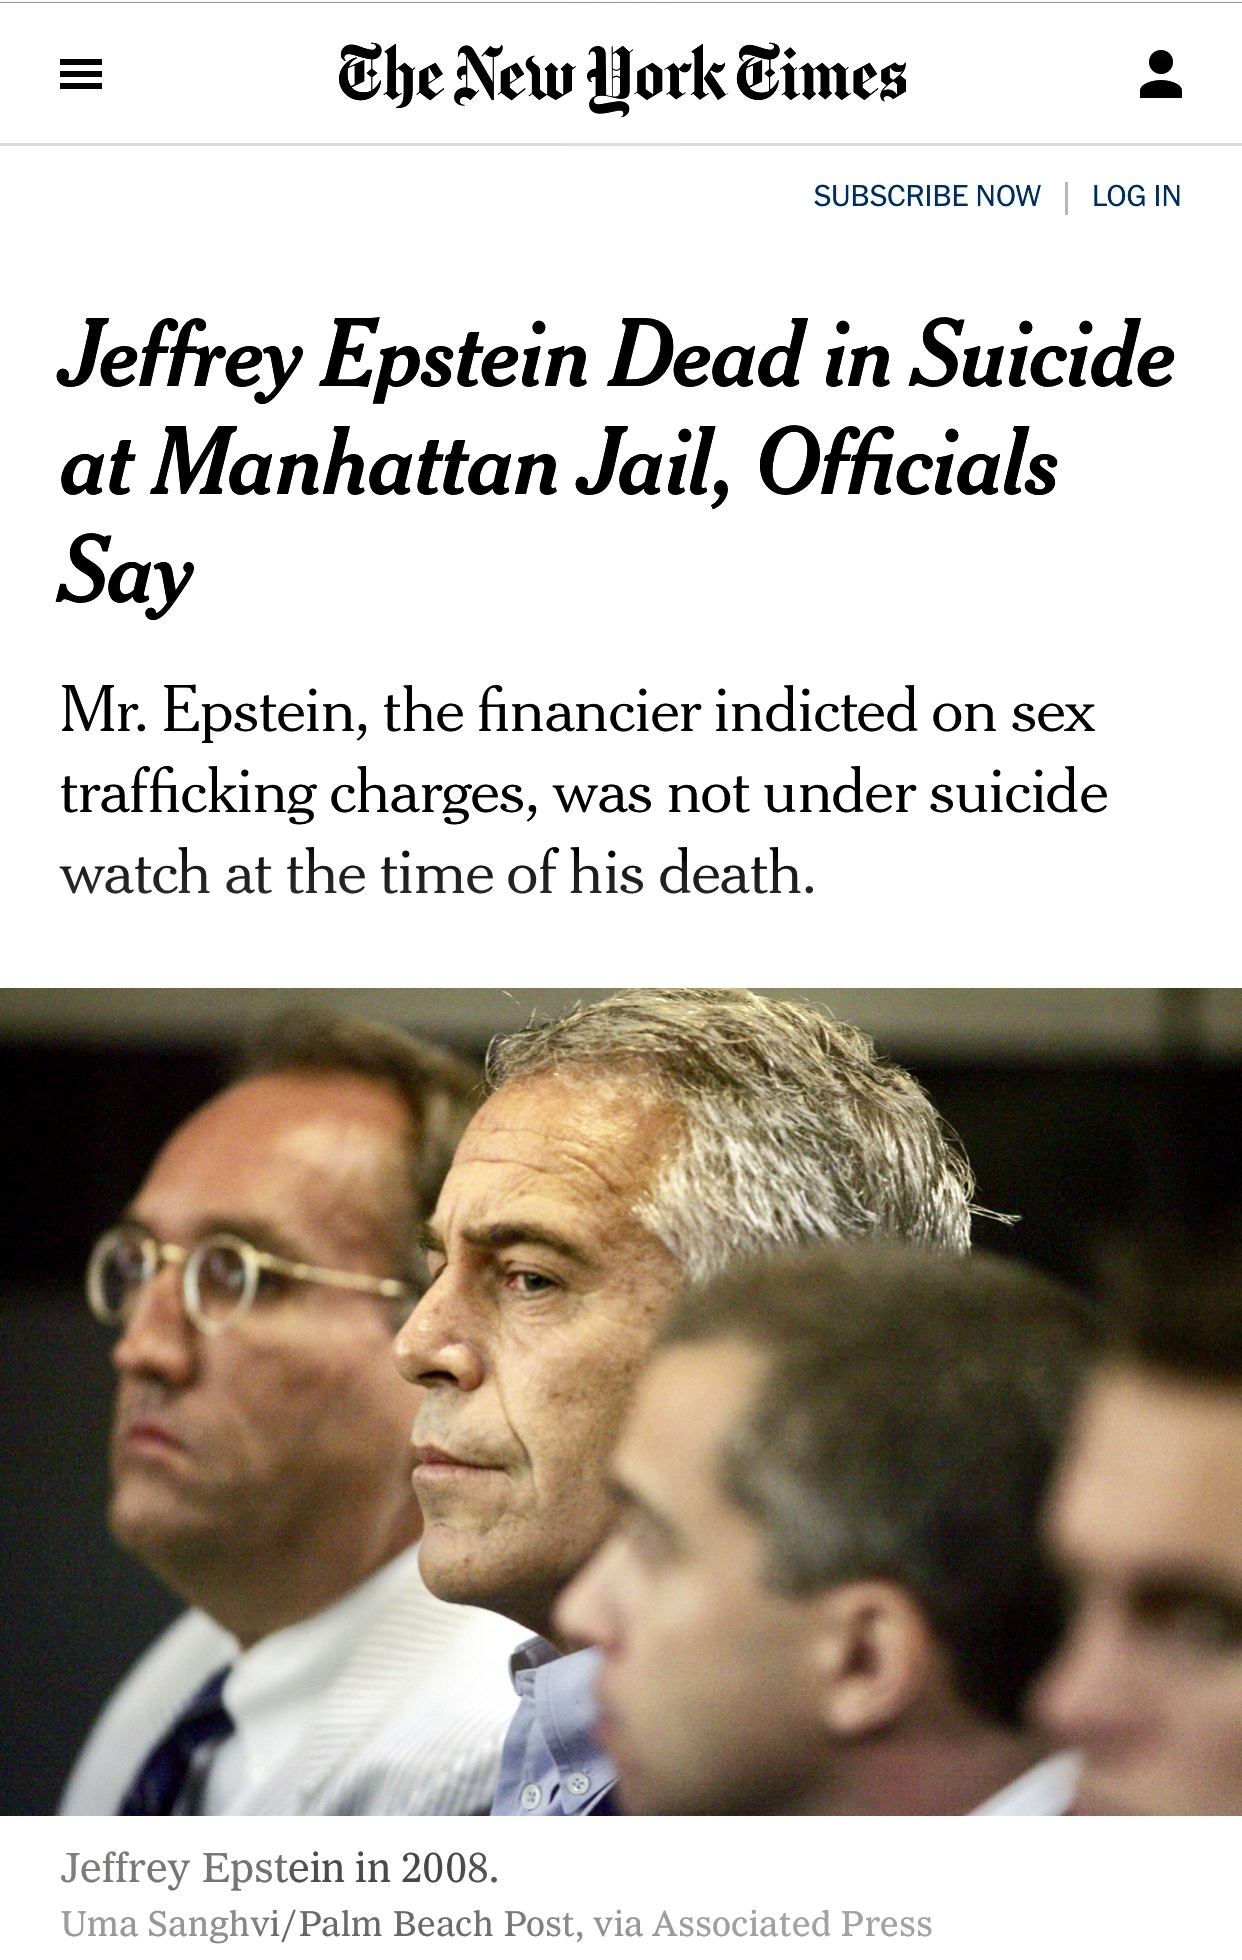 Jeffrey Epstein Dead in Suicide at Manhattan Jail, Officials Say – The New York Times